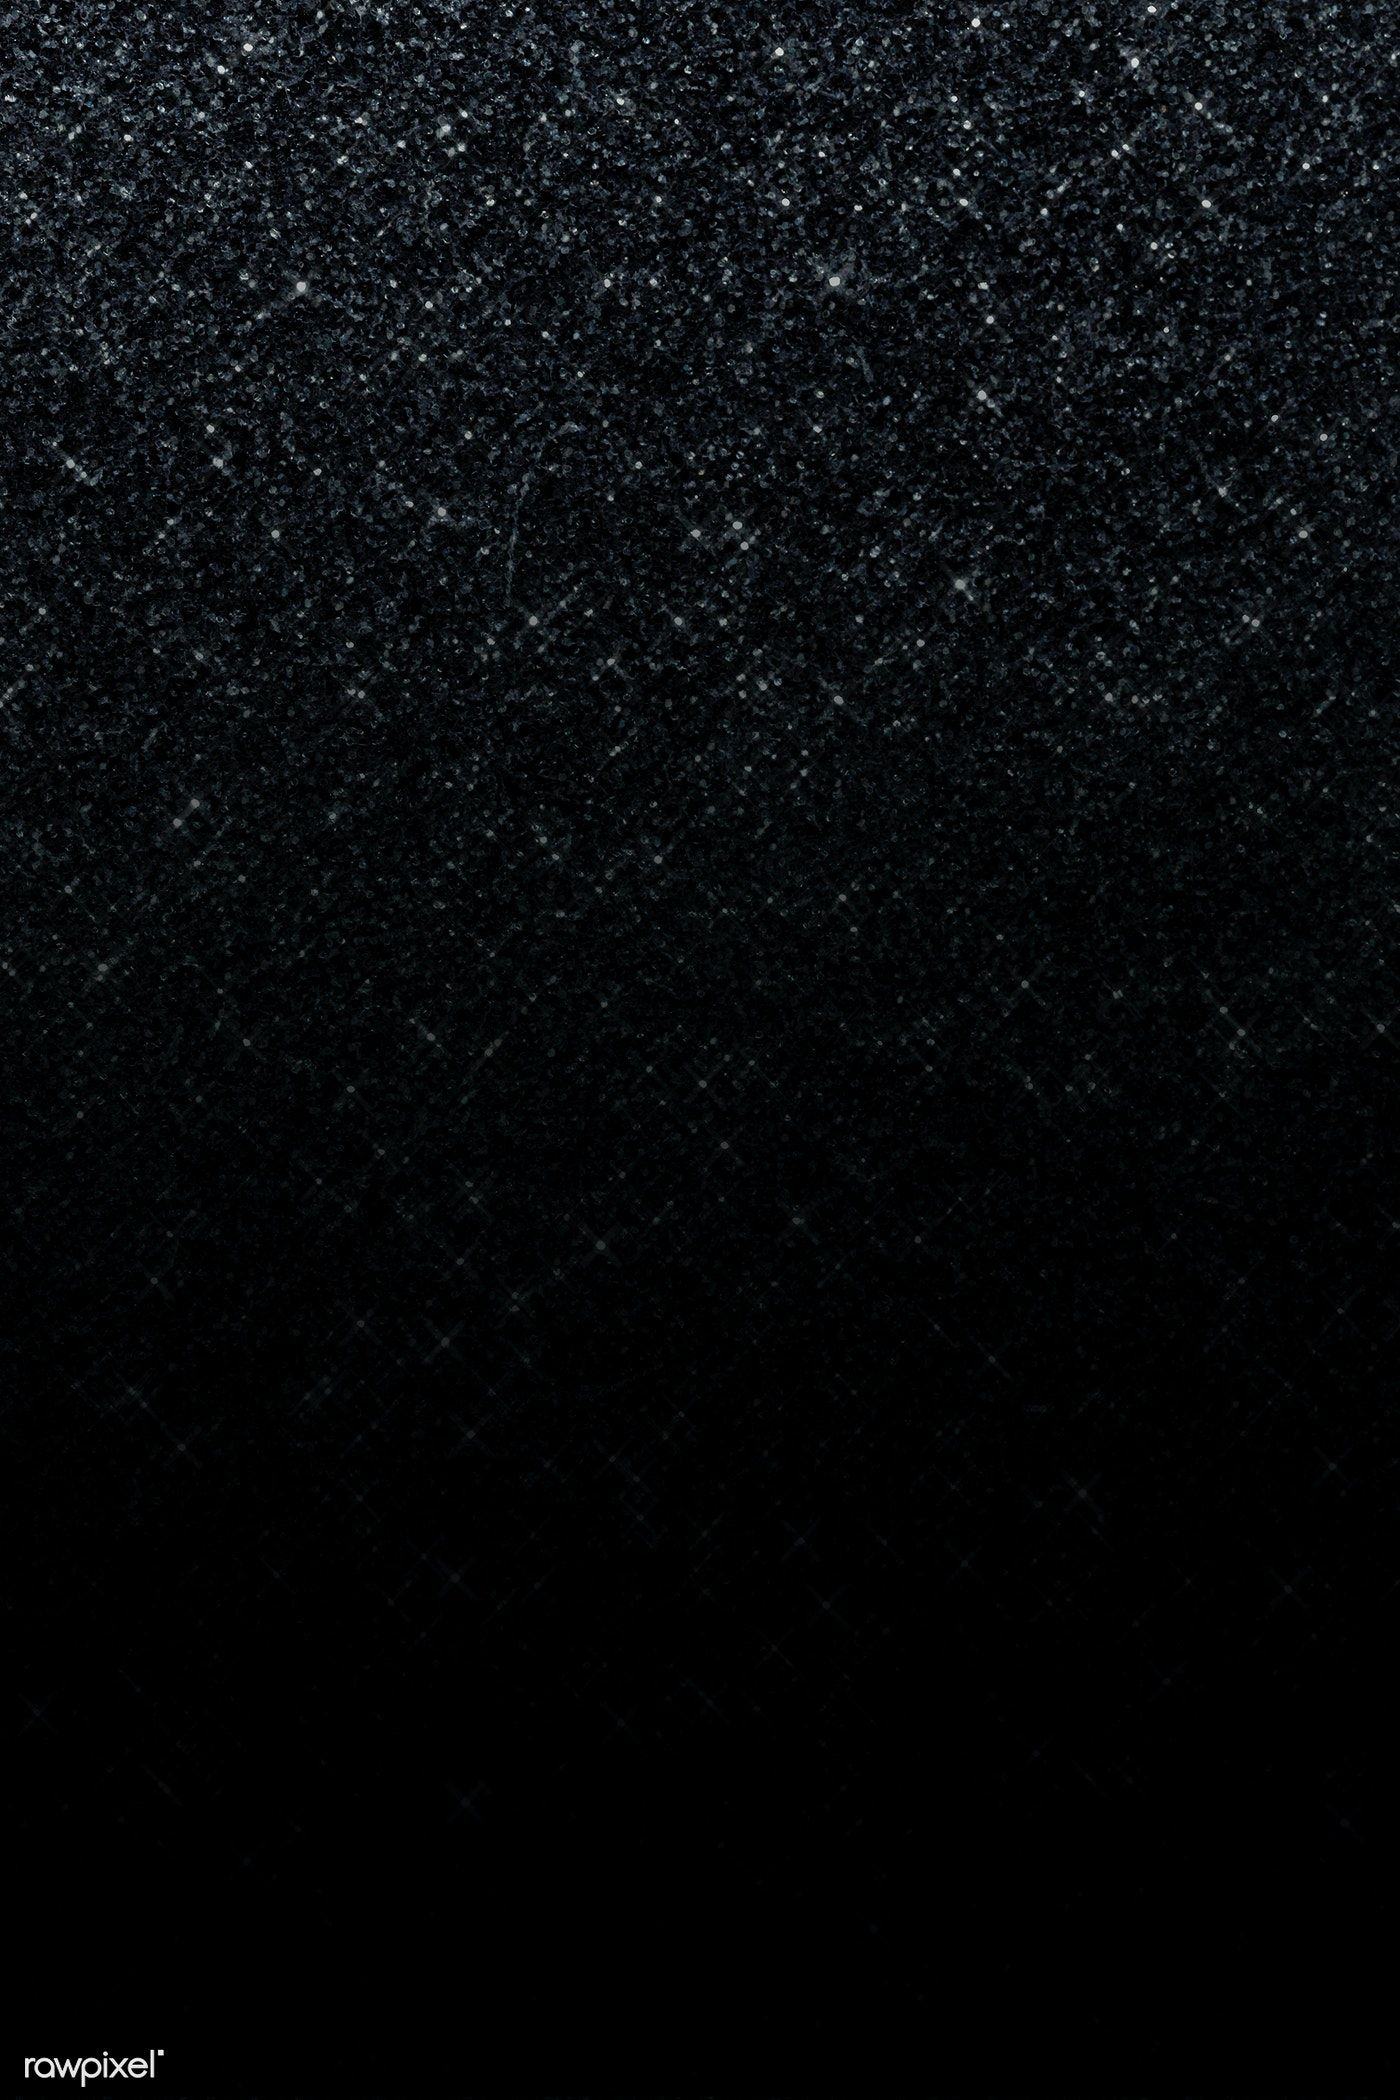 Download Premium Image Of Black Glitter Textured Background 2281079 Black Sparkle Background Black Glitter Sparkles Background